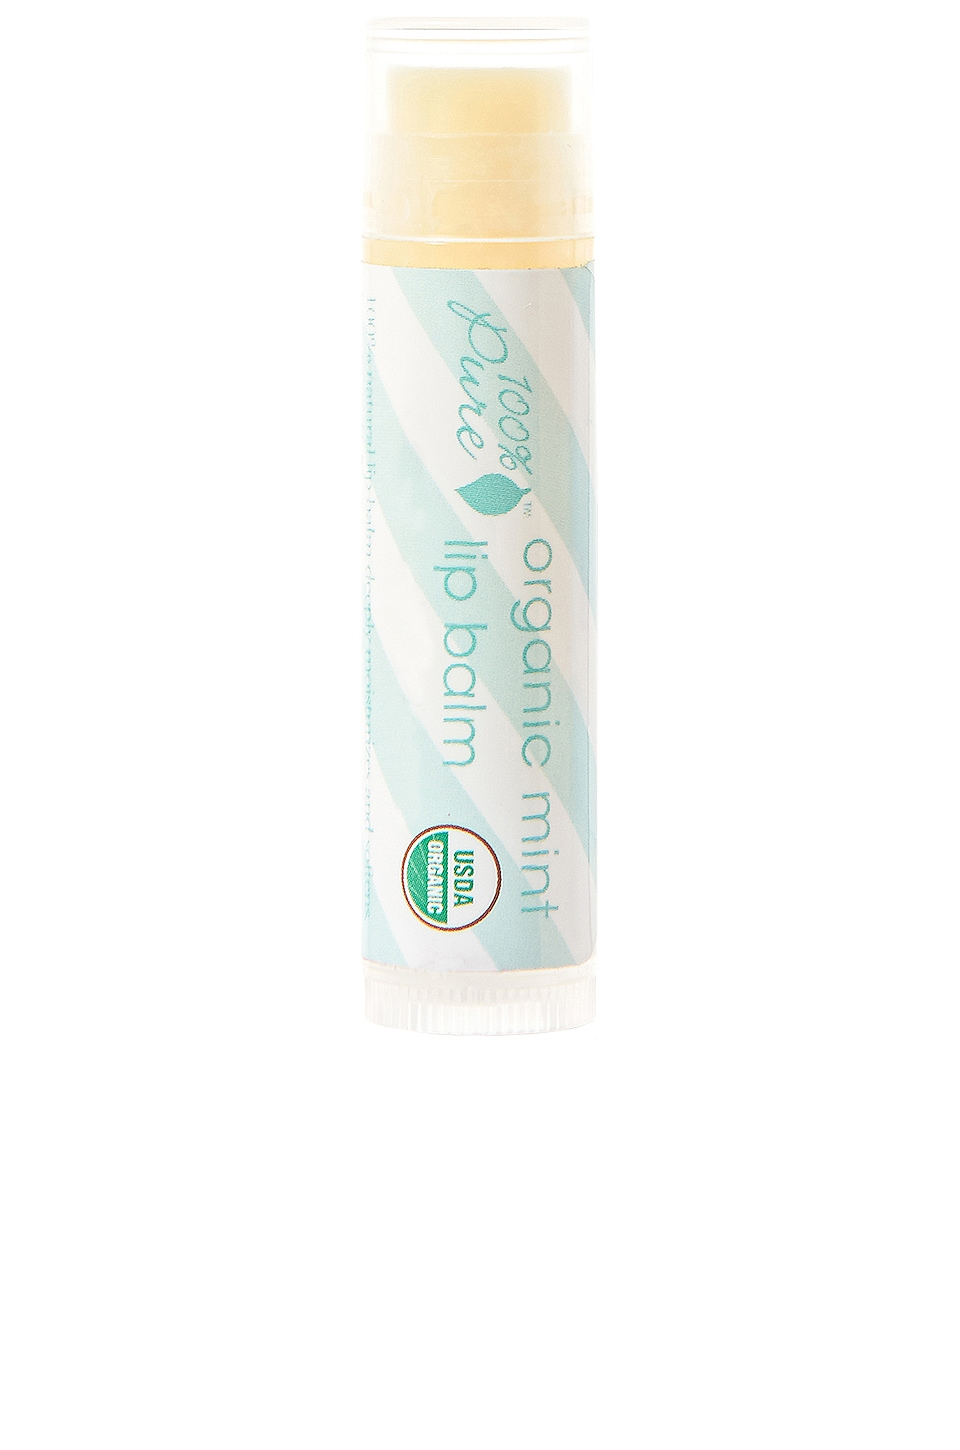 100% Pure Lip Balm in Organic Mint